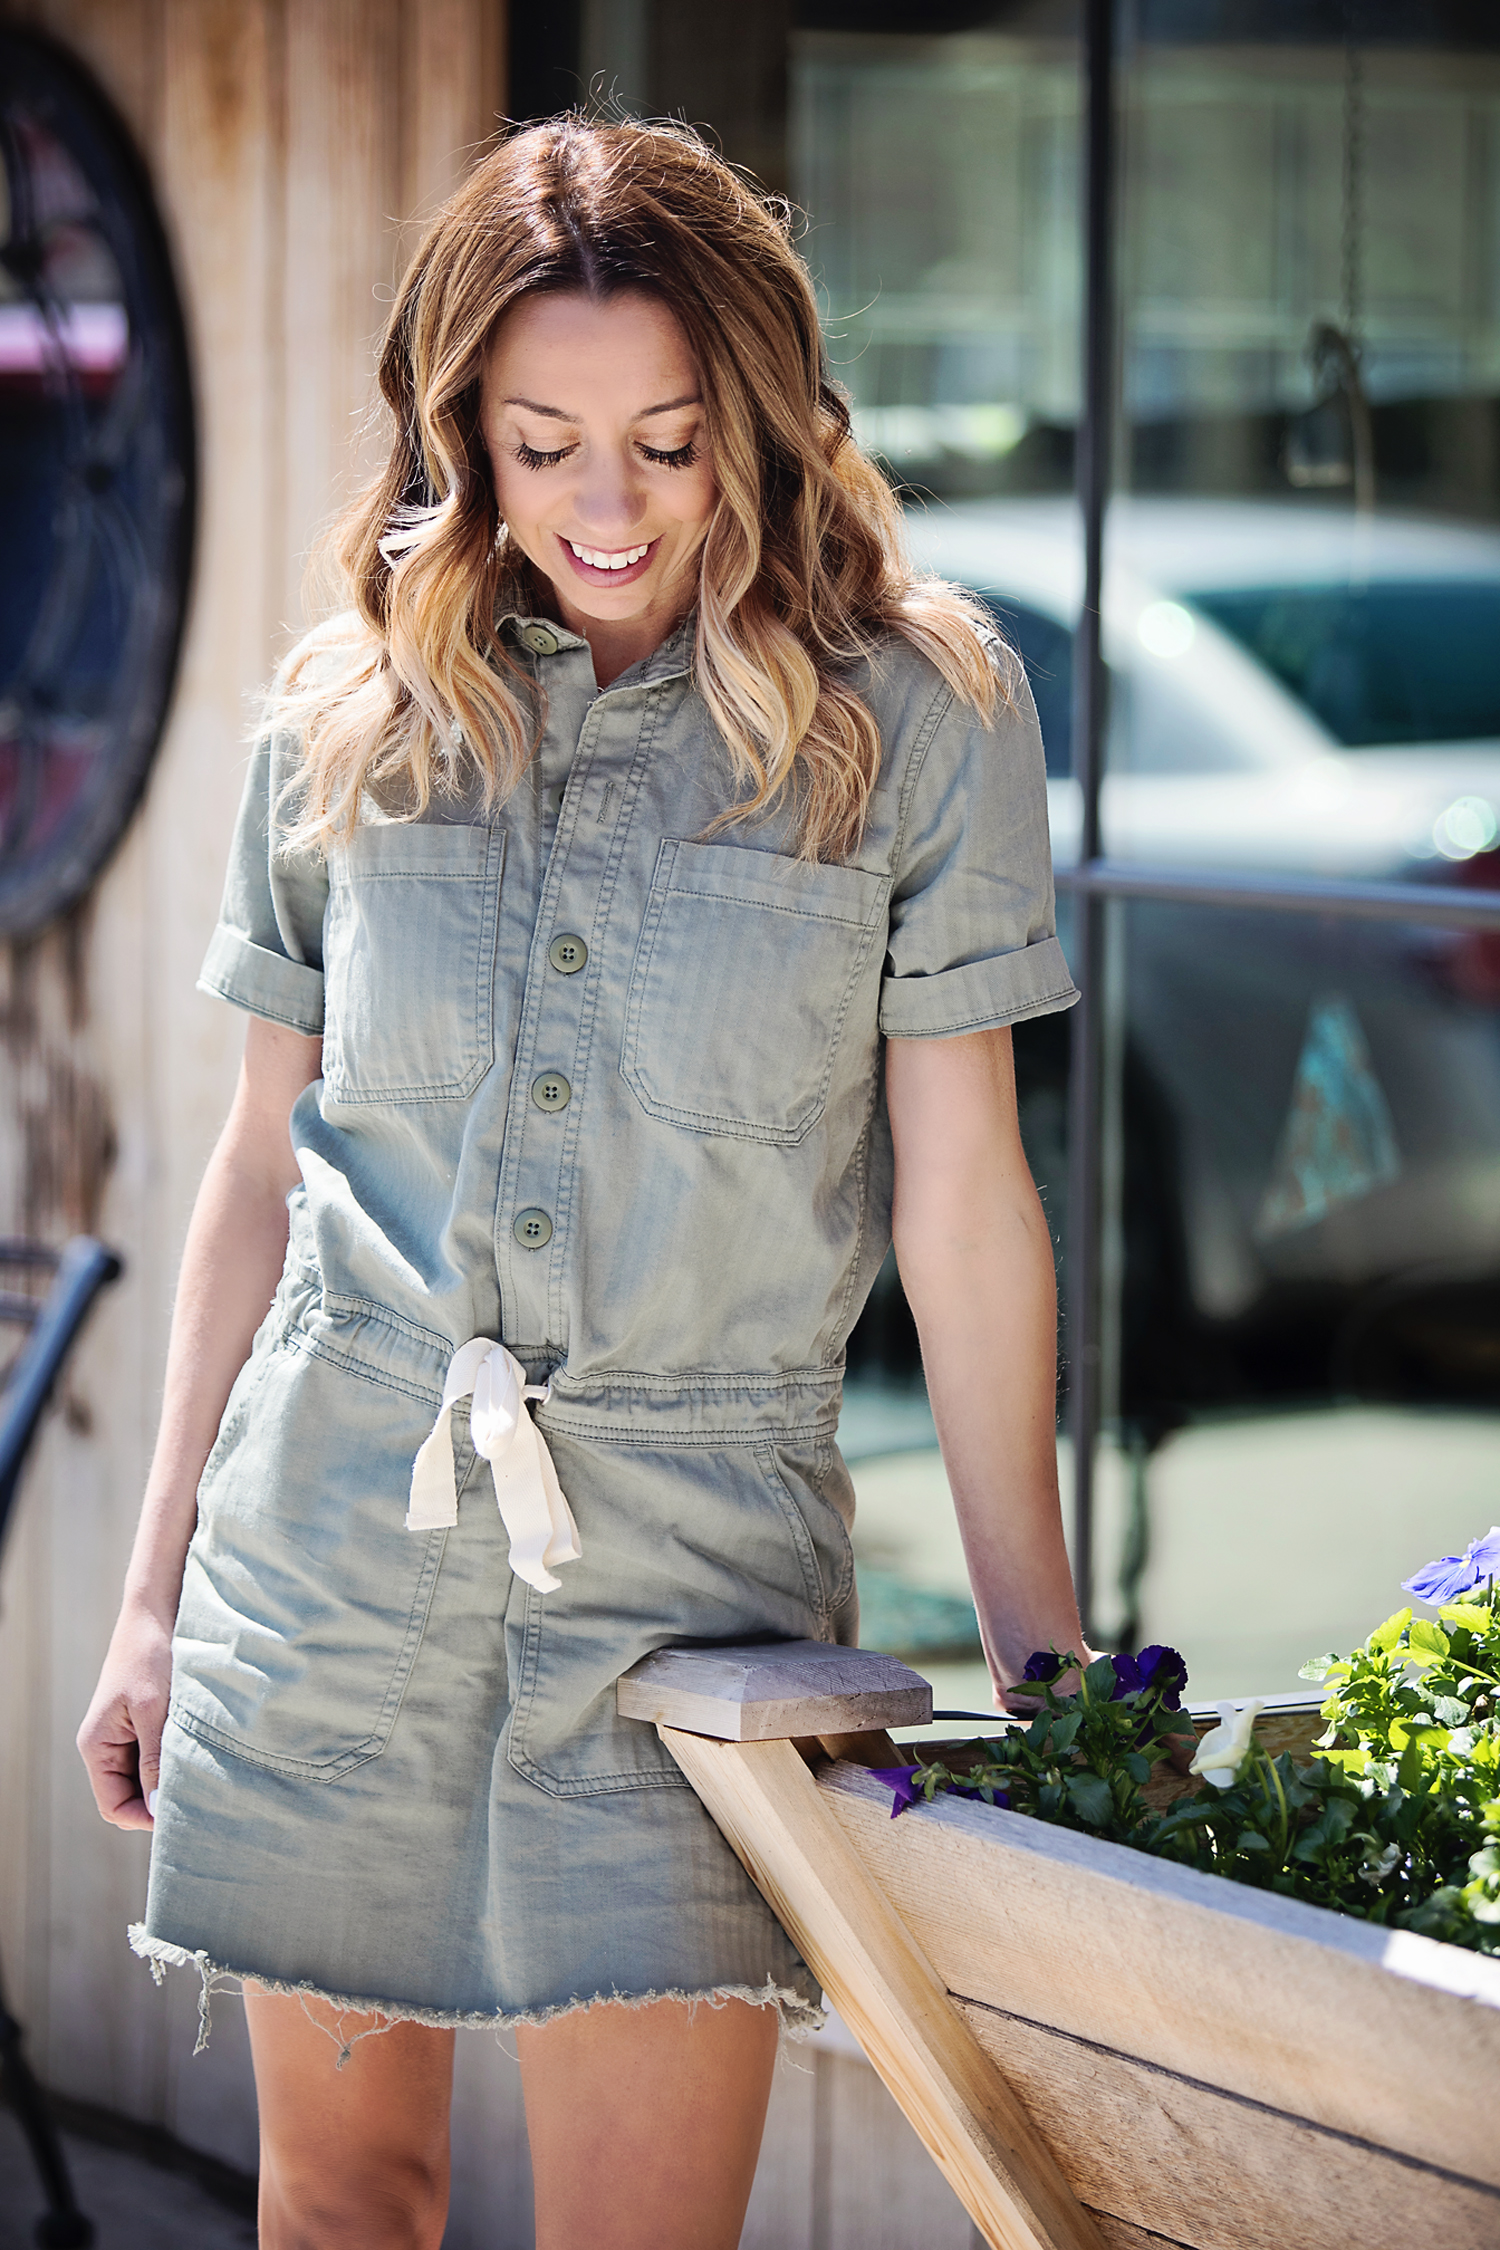 The Motherchic wearing utility dress by lucky brand